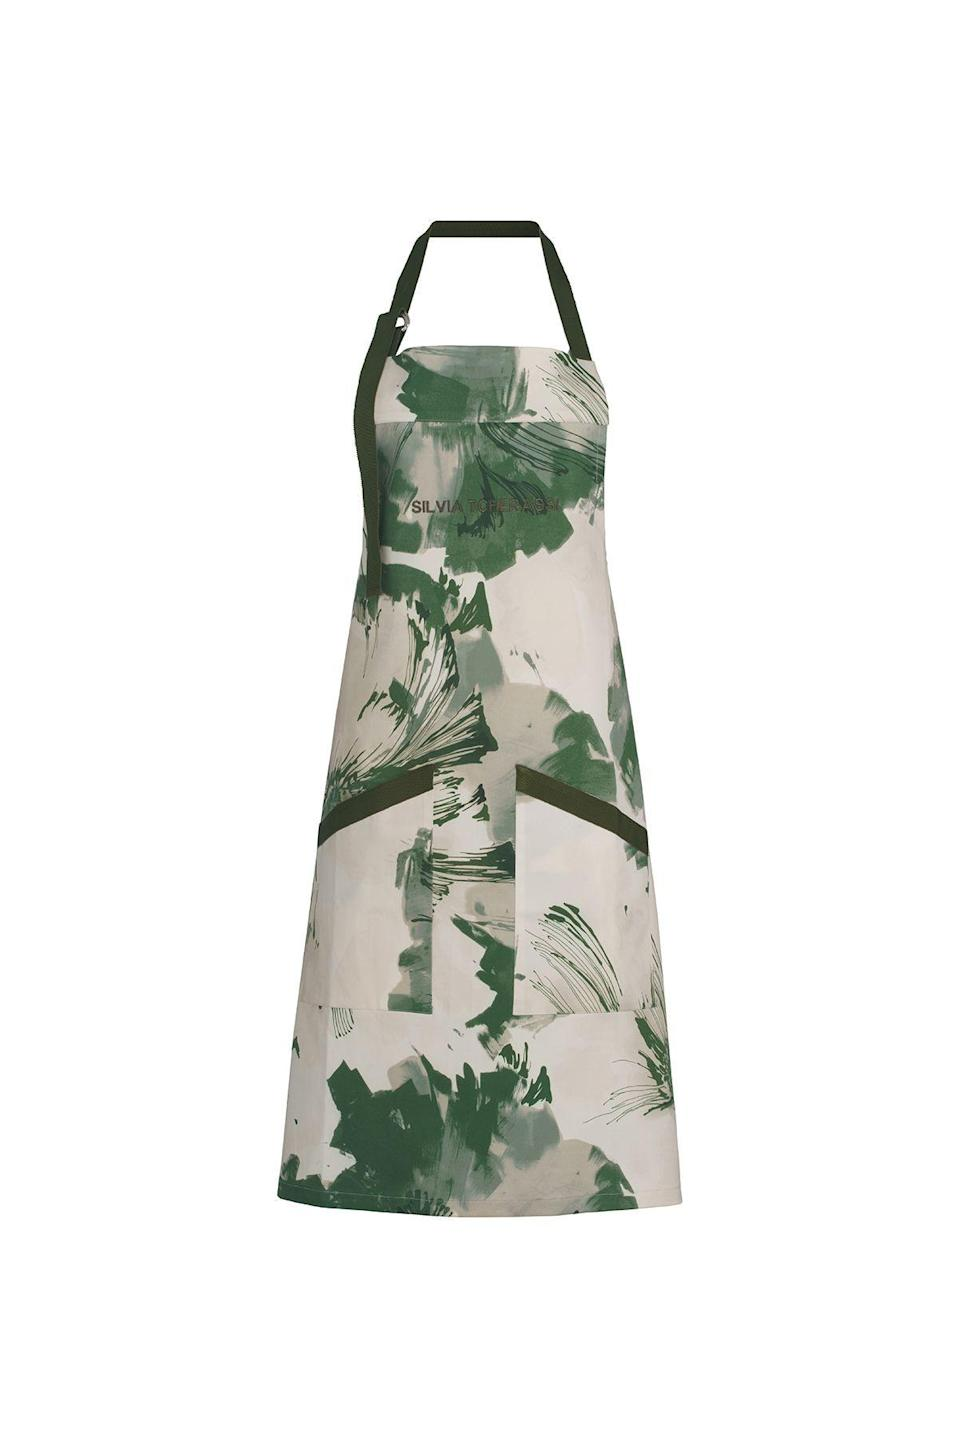 """<p>silviatcherassi.com</p><p><strong>$80.00</strong></p><p><a href=""""https://www.silviatcherassi.com/us/en/shop/products/jasmine-overall-green-floral"""" rel=""""nofollow noopener"""" target=""""_blank"""" data-ylk=""""slk:Shop Now"""" class=""""link rapid-noclick-resp"""">Shop Now</a></p><p>""""These fun aprons/overalls are made from up-cycled fabrics from the brand's RTW collections and they are great for all at home activities from cooking, to painting, to flower arranging!""""</p>"""